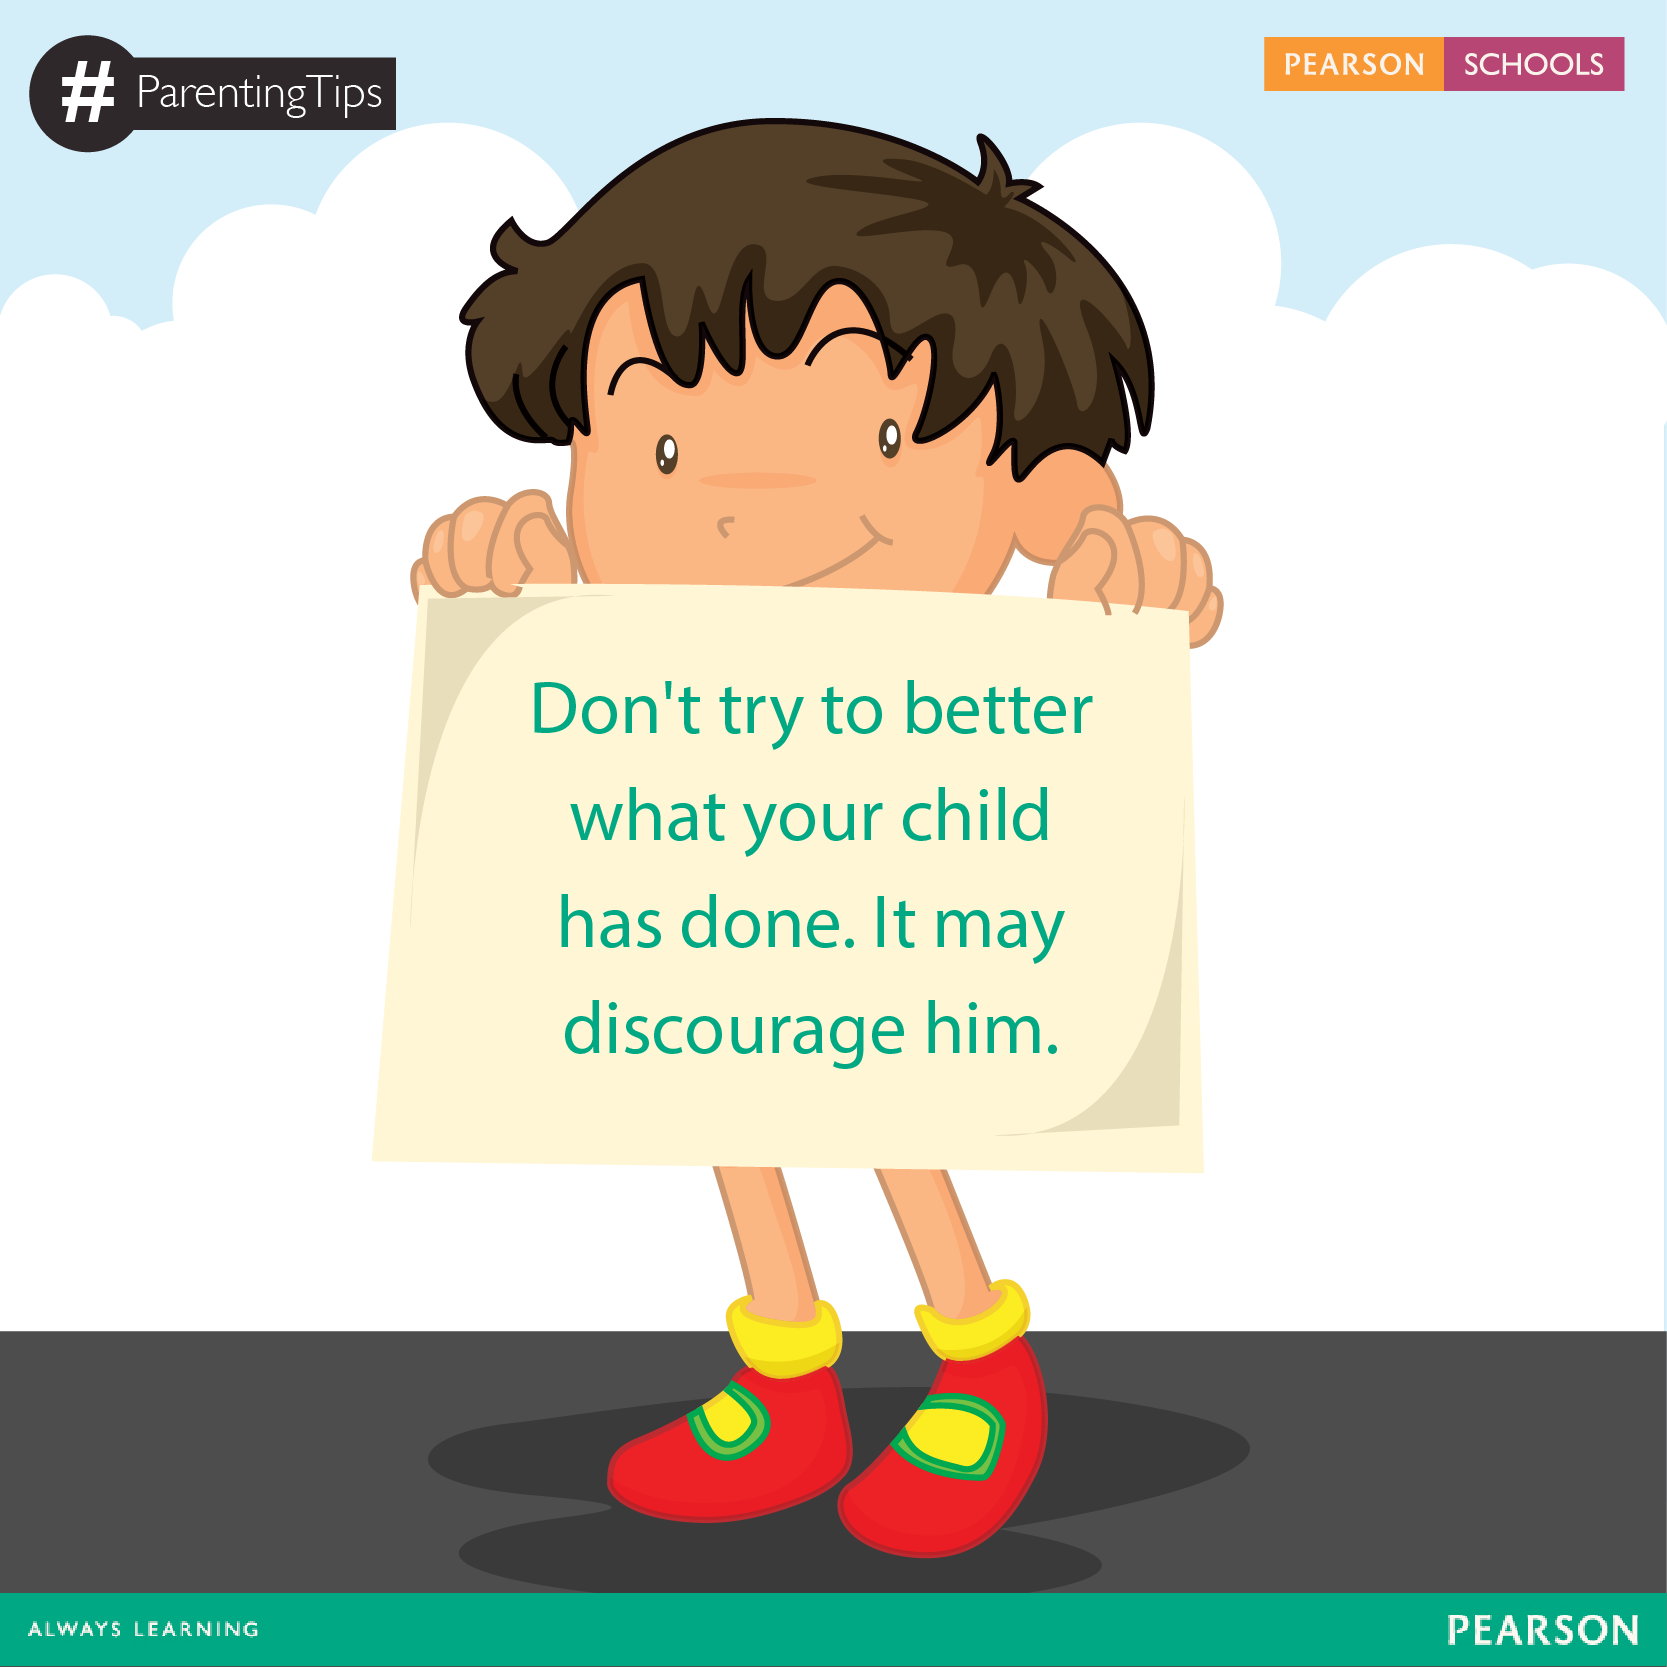 Unless absolutely necessary, don't fix what your child has accomplished. This simple task will build your child's confidence and sense of competency. #ParentingTips